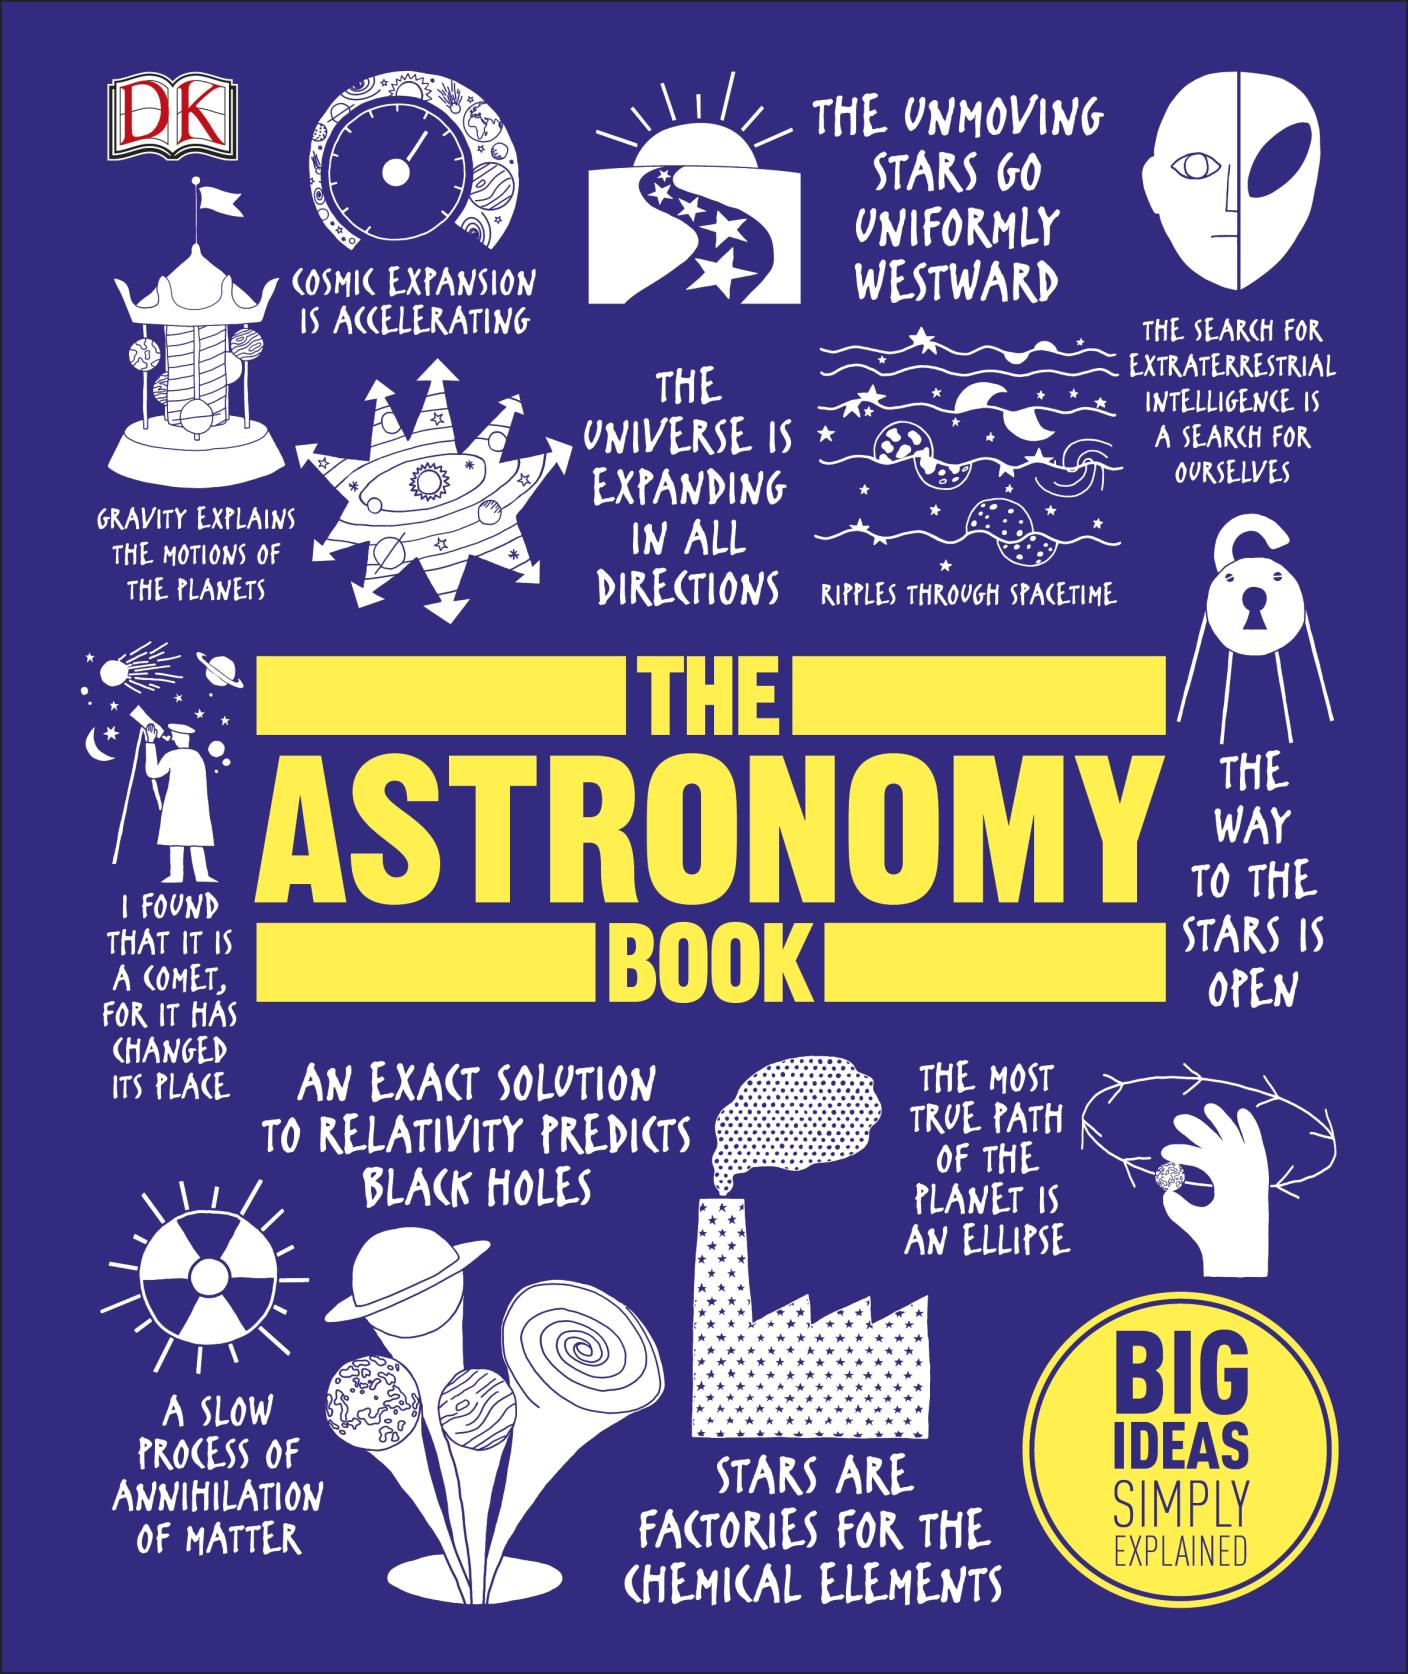 DK The Astronomy Book